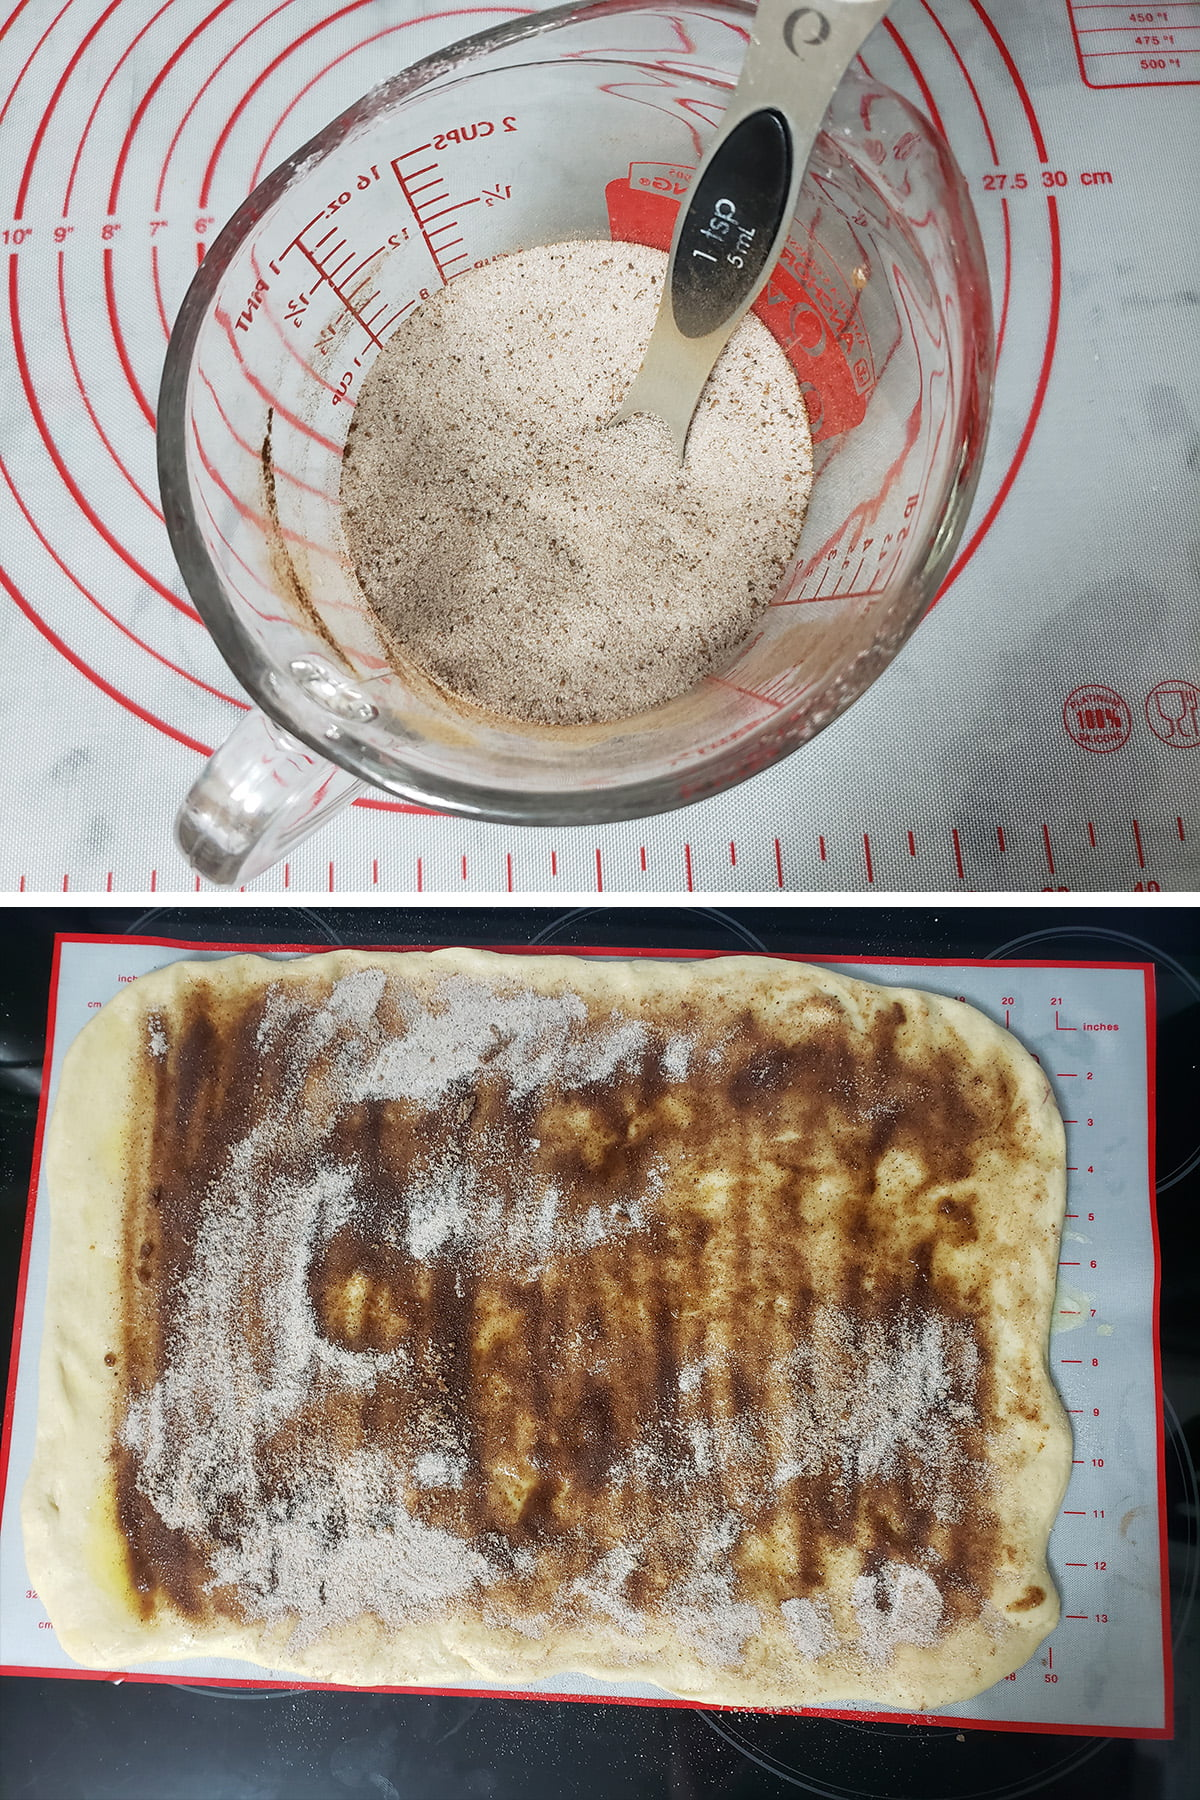 A 2 photo compilation image showing a measuring cup with spiced sugar, and the spiced sugar having been spread over the buttered dough rectangle.